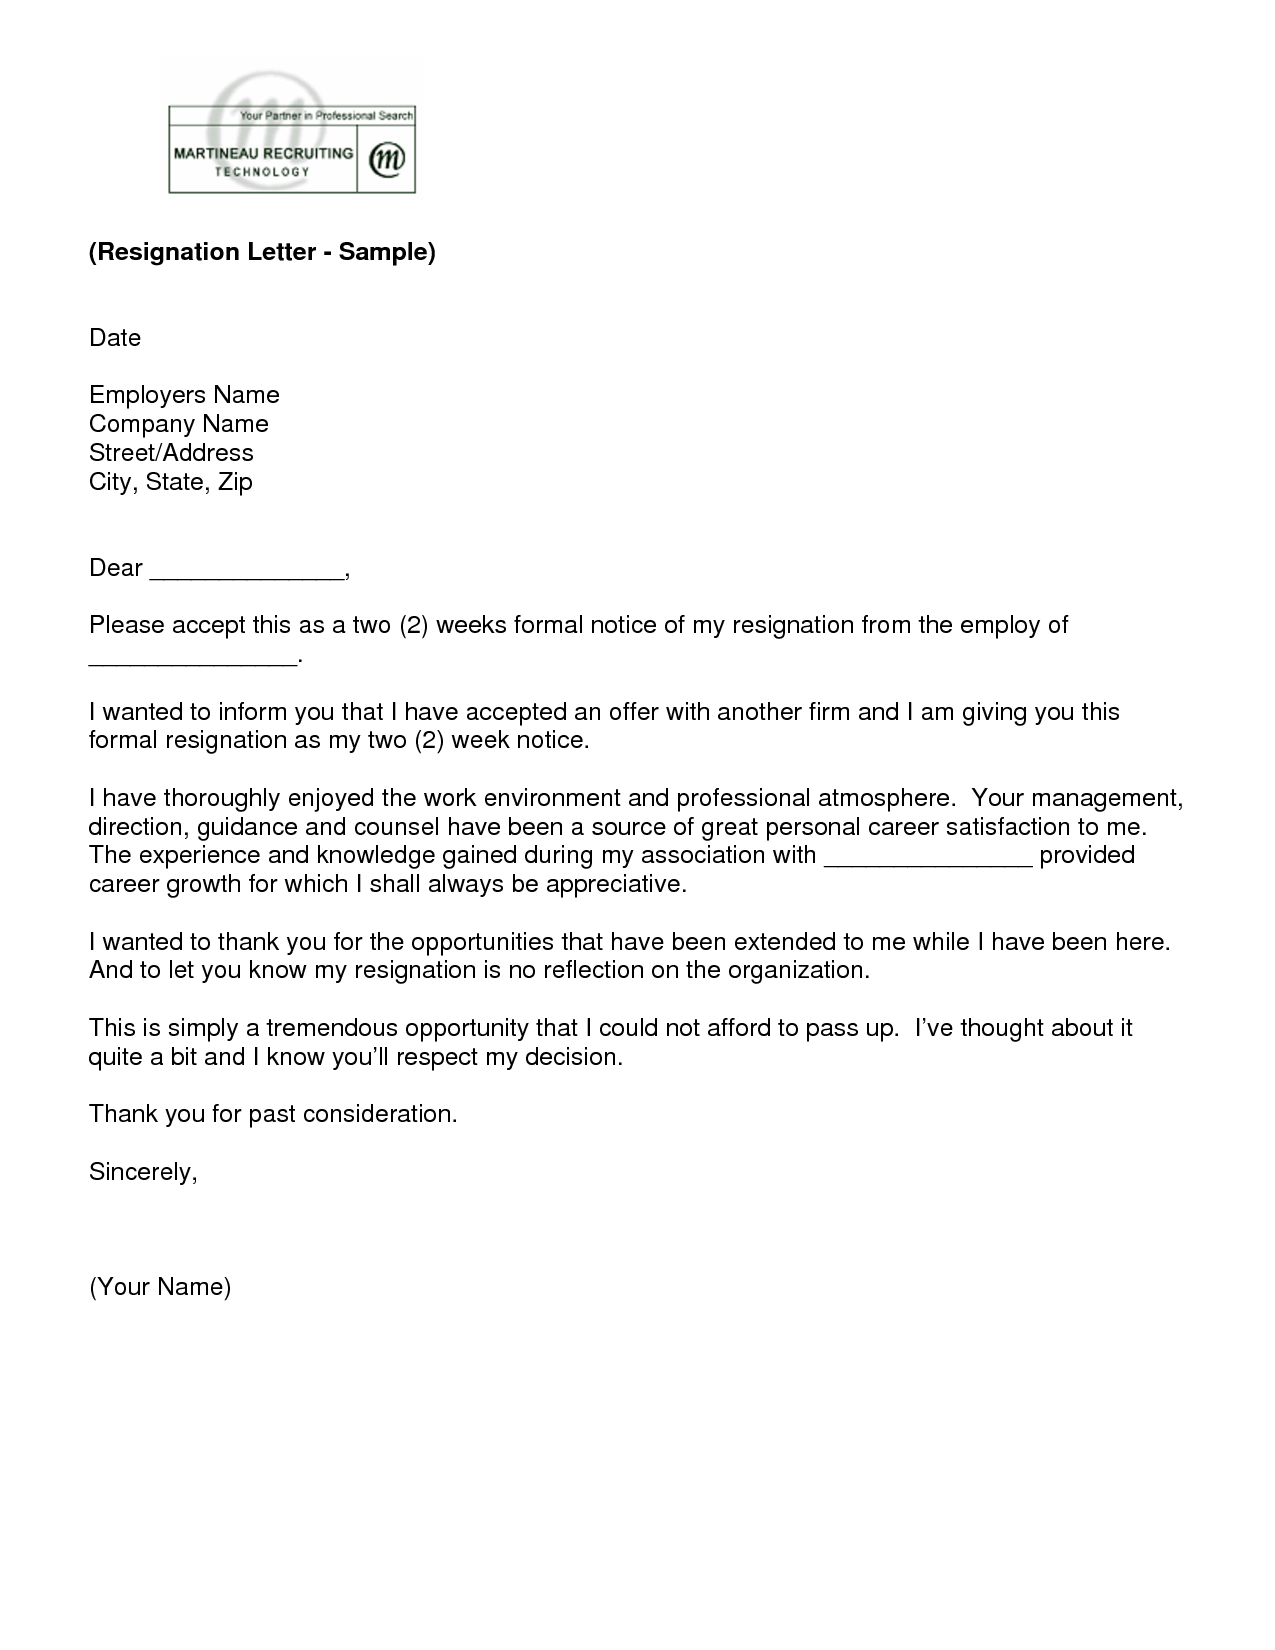 letter of resignation weeks notice template ew adulthood letter of resignation 2 weeks notice template